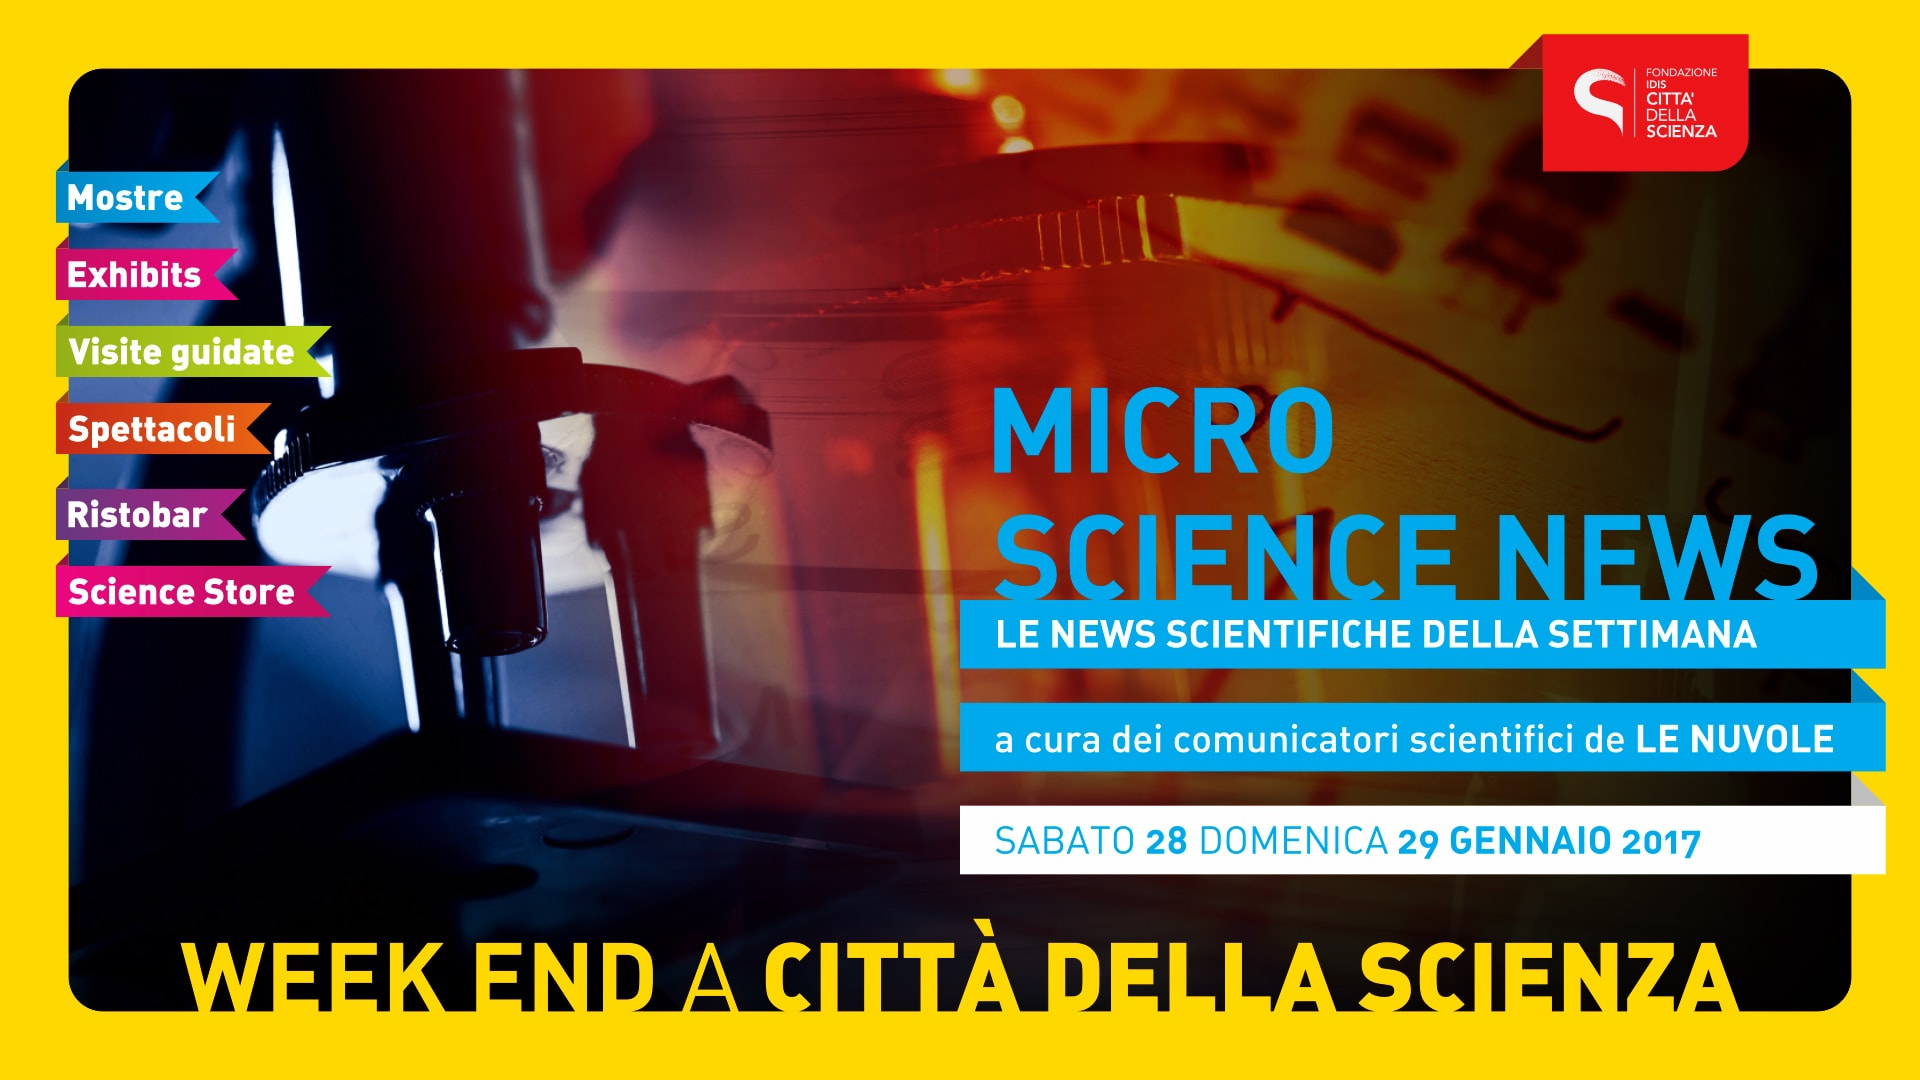 MICRO_SCIENCE_NEWS_1920_x_1080-min